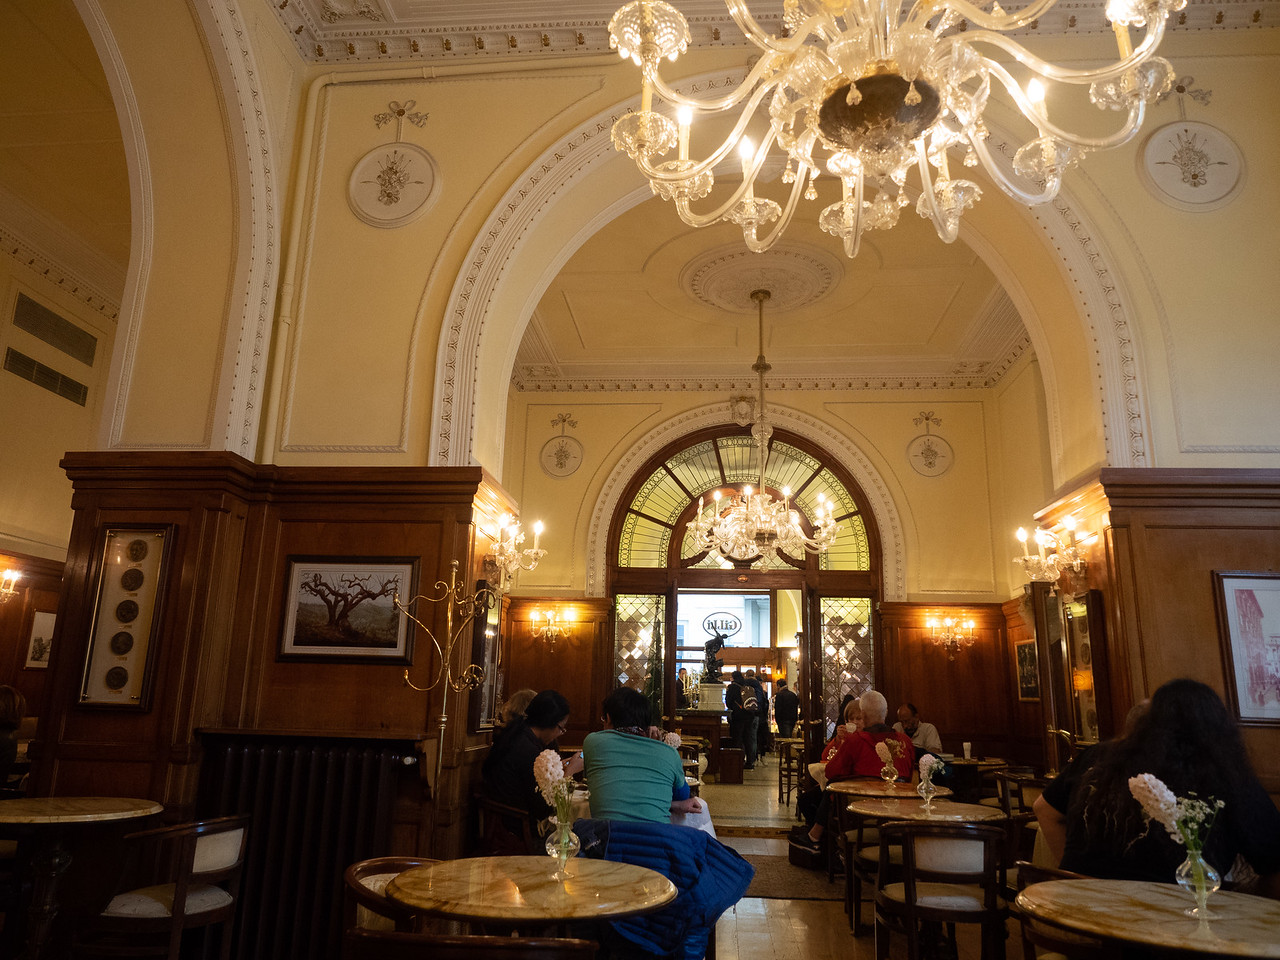 Back in Florence, having a coffee in the beautiful old cafe,  Gilli